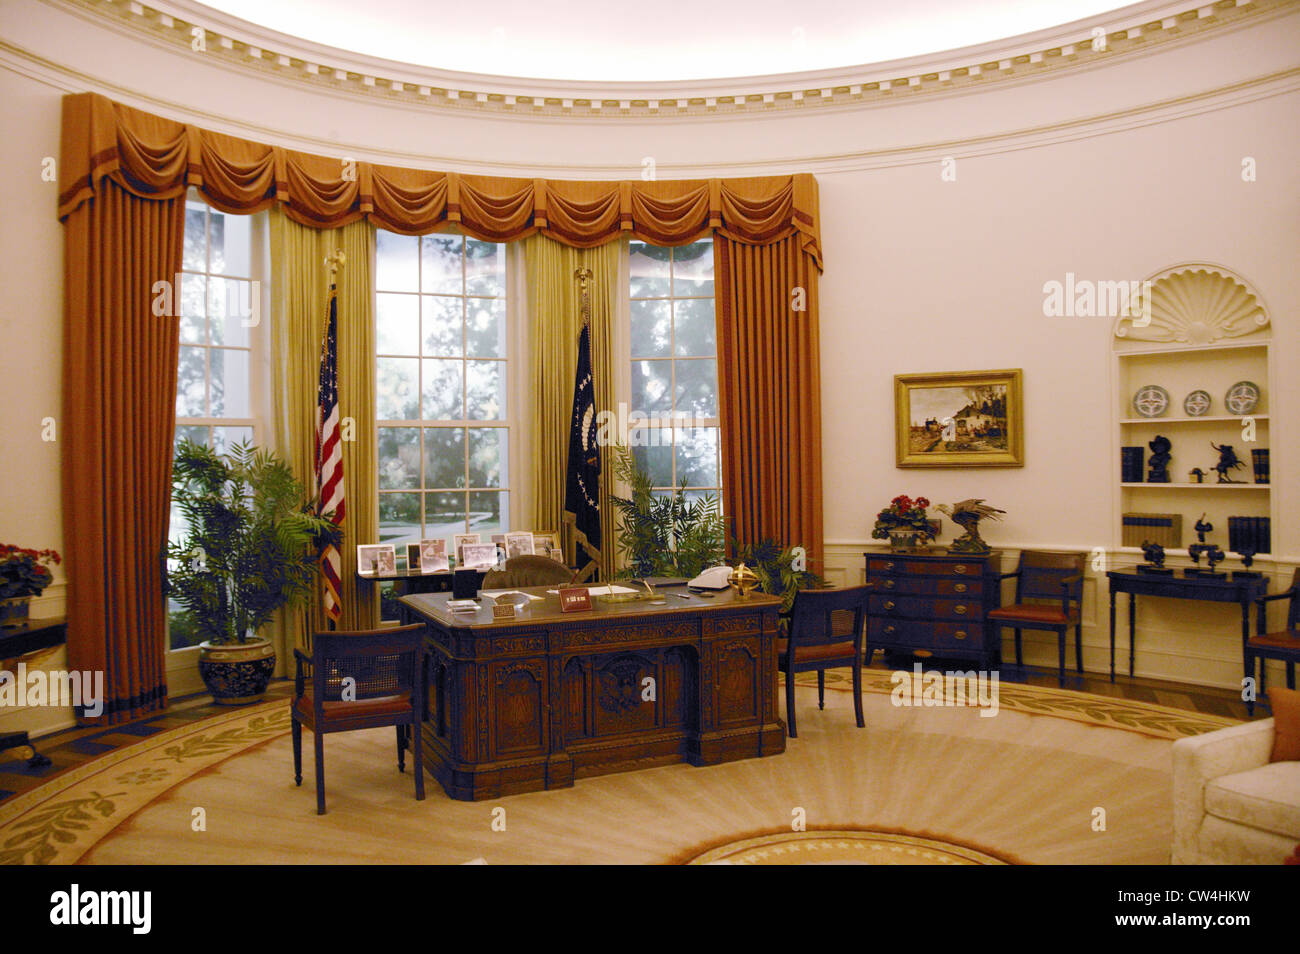 White House Oval Office High Resolution Stock Photography And Images Alamy